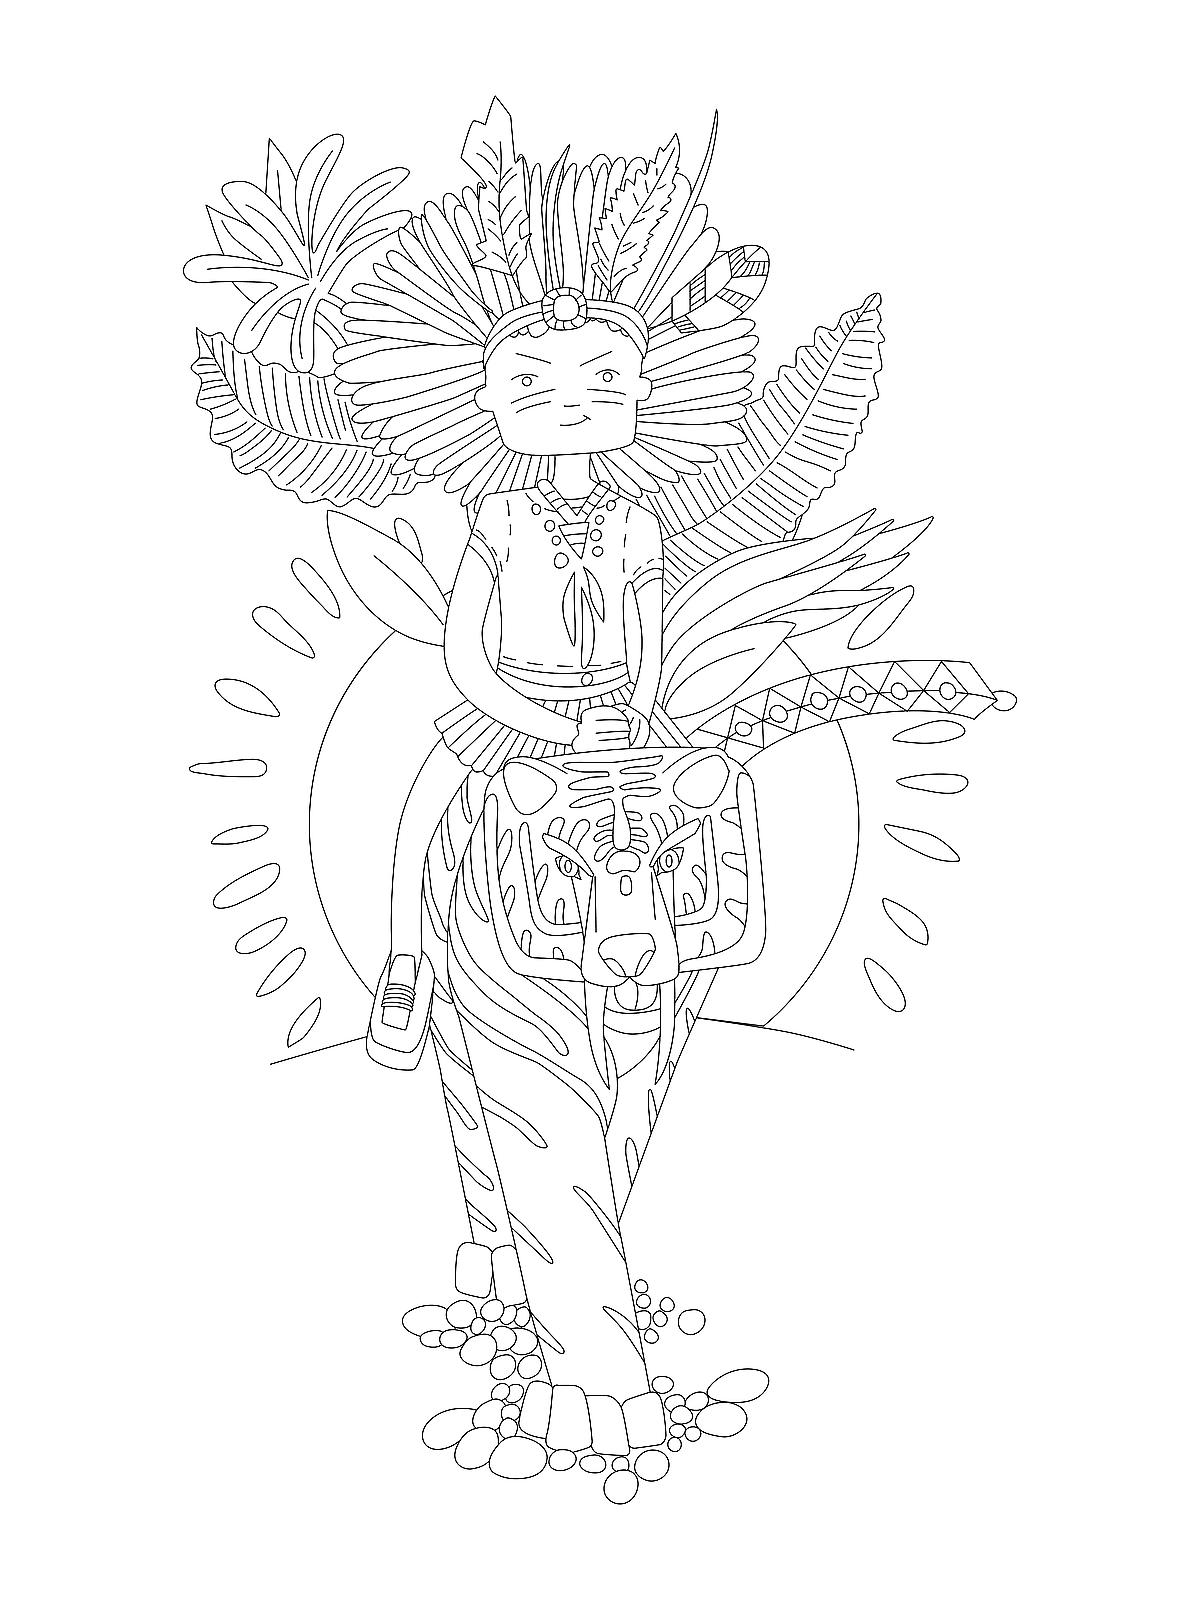 Strong Women Coloring Pages: 10 Printable Coloring Pages